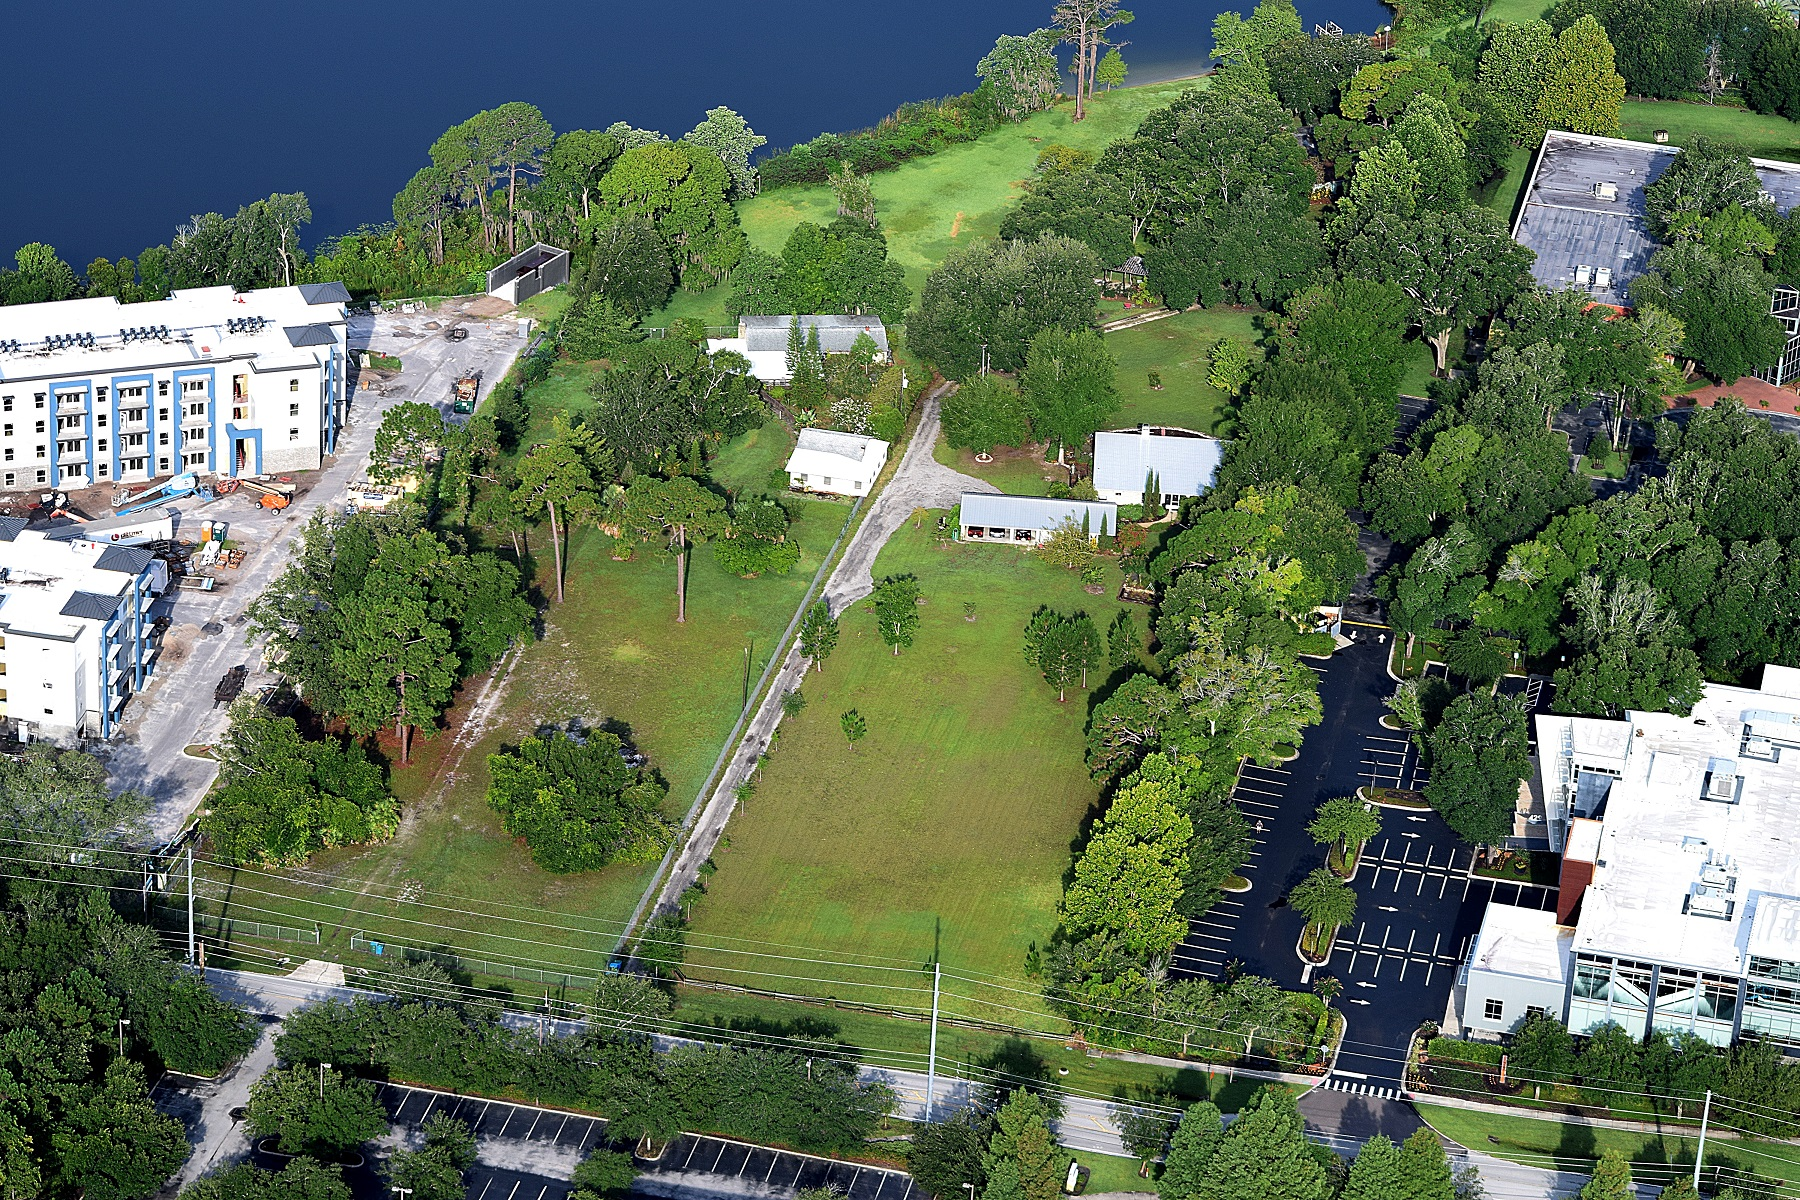 Land for Sale at ORLANDO - FLORIDA 441 S Keller Rd 7 Orlando, Florida, 32810 United States